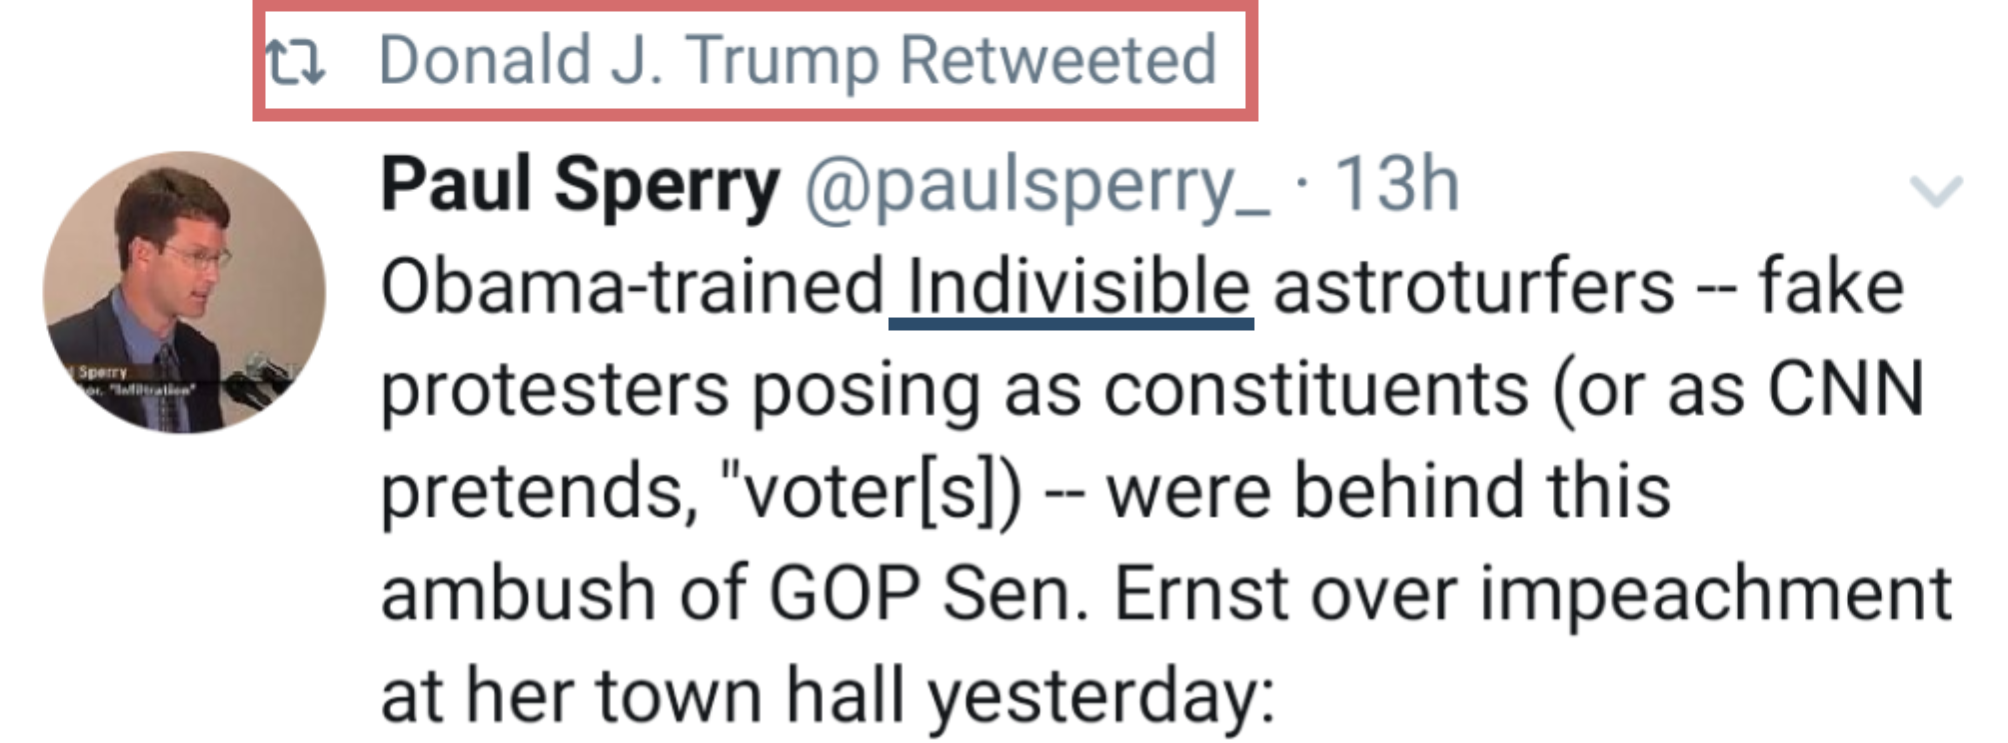 "A screenshot of @RealDonaldTrump retweeting a tweet that reads ""Obama-trained Indivisible astroturfers -- fake protesters posing as constituents (or as CNN pretends, ""voter[s]) -- were behind this ambush of GOP Sen. Ernst over impeachment at her town hall yesterday"""